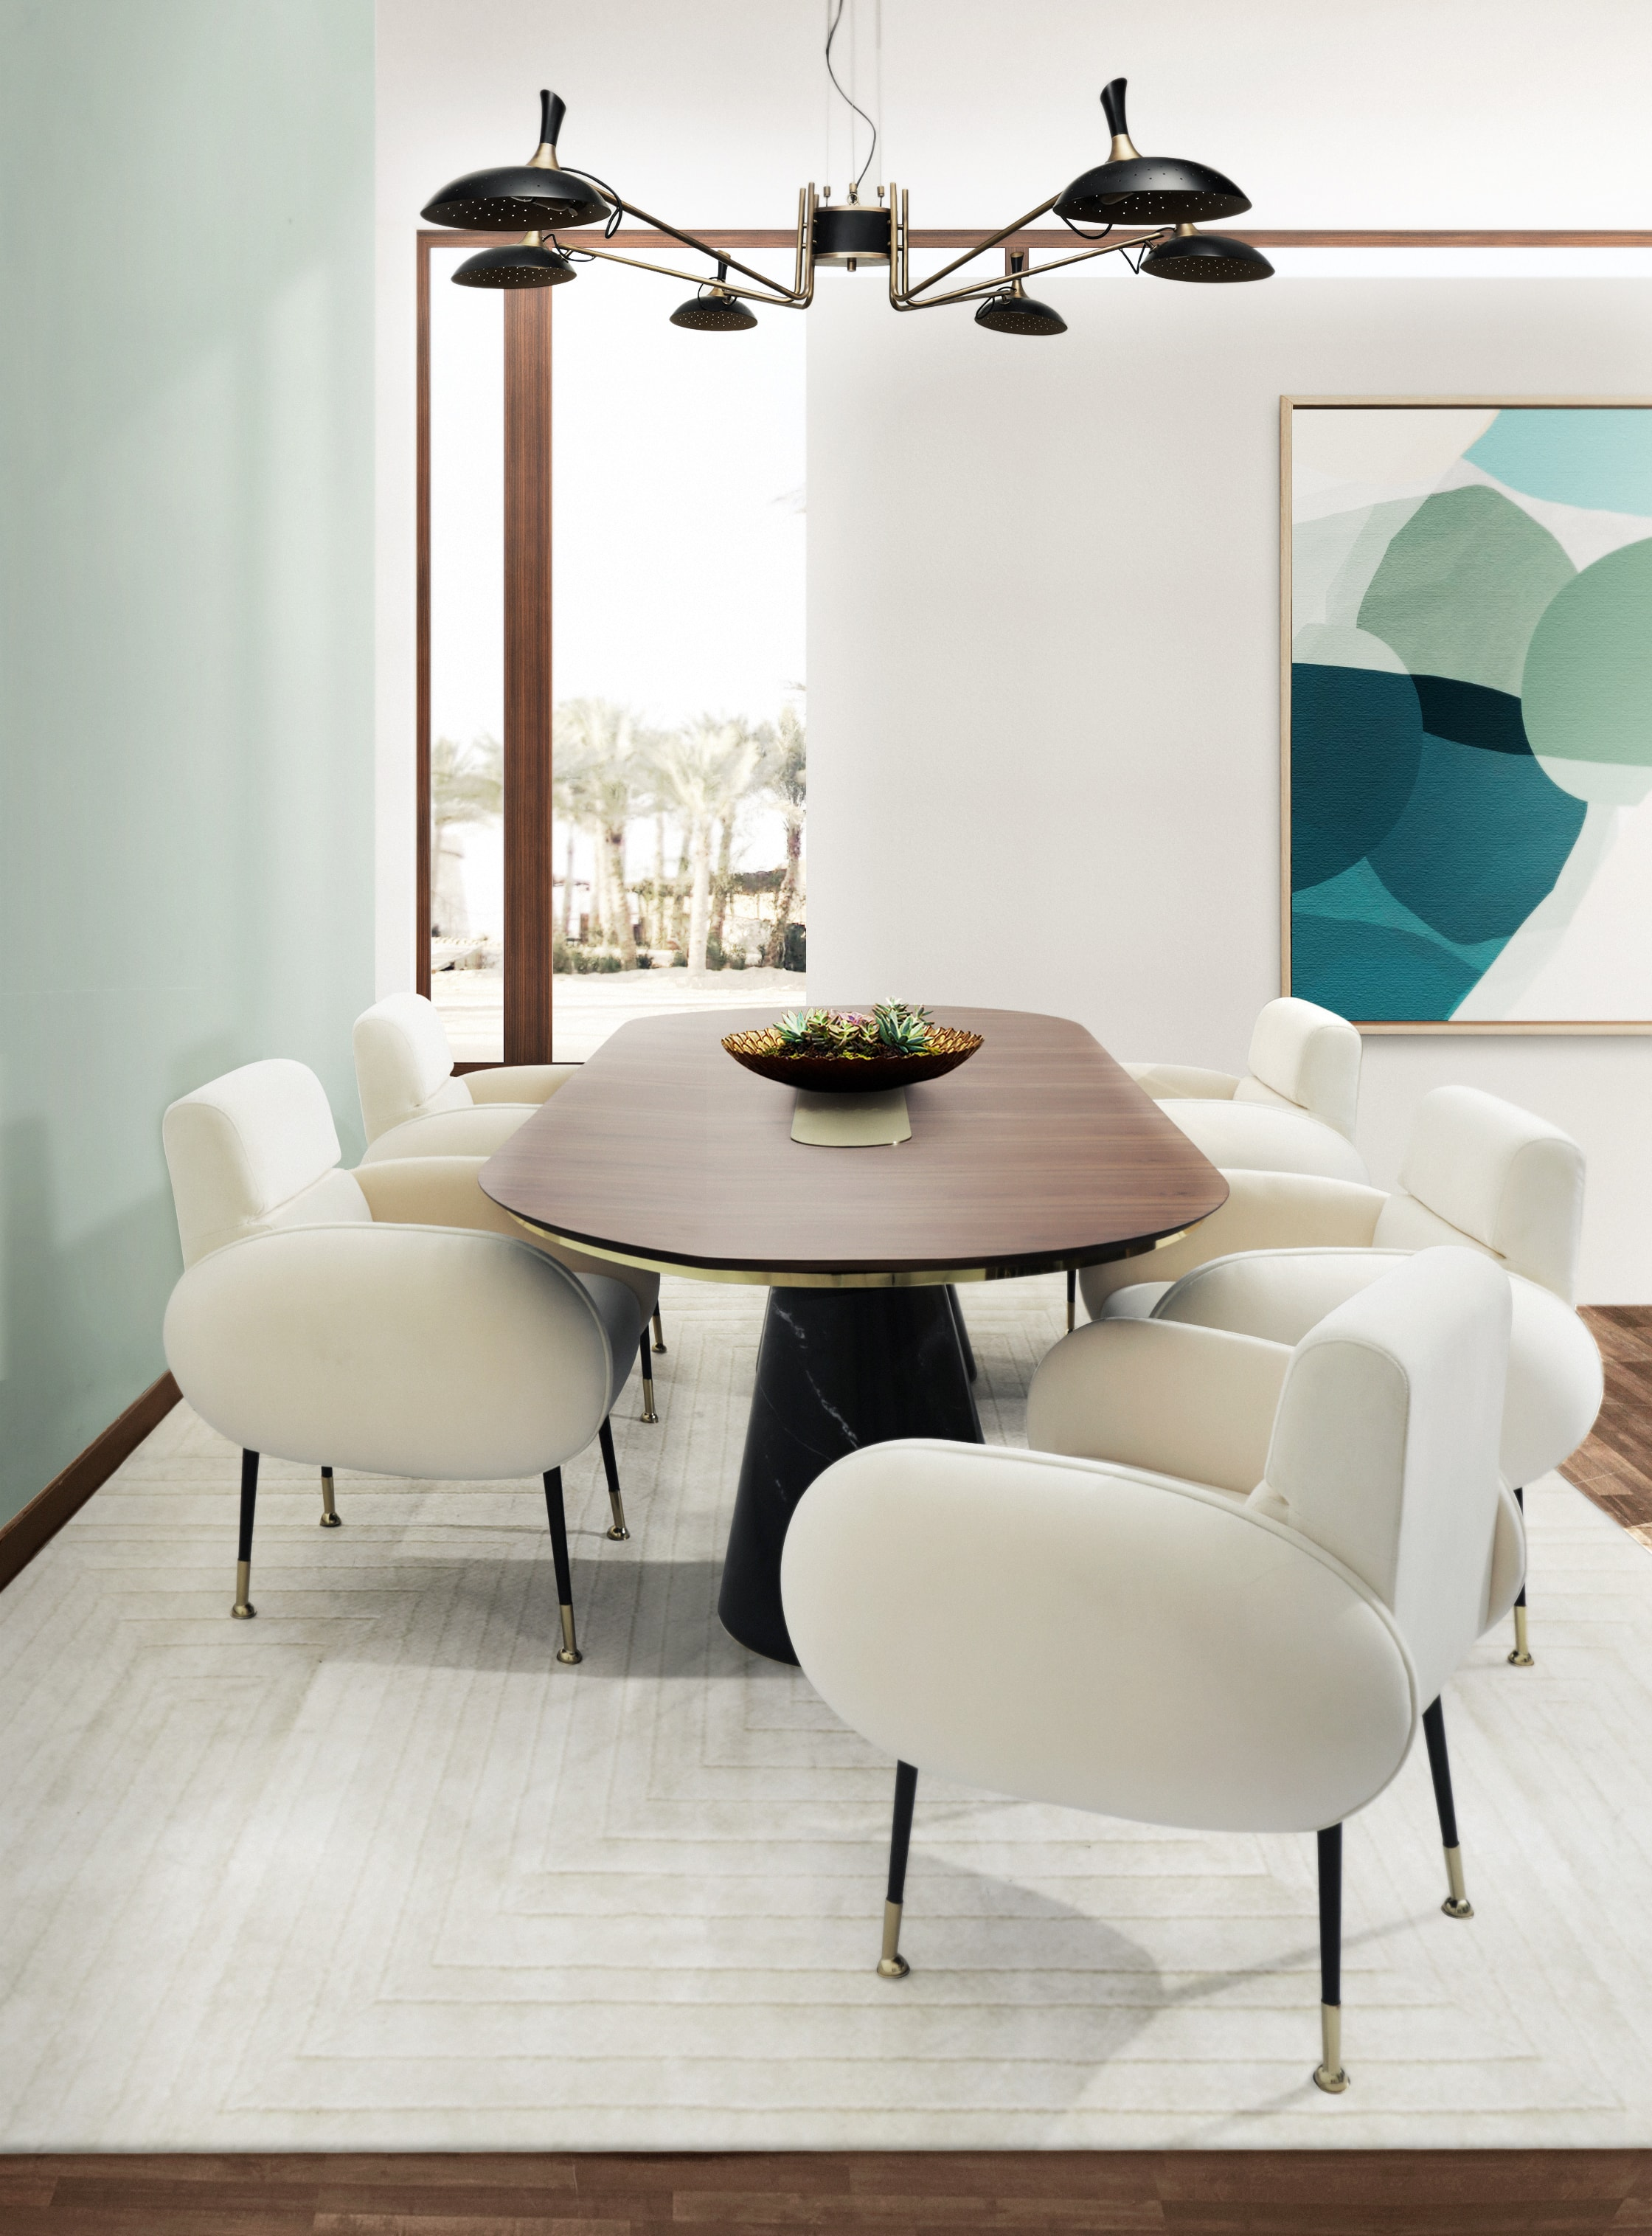 Pop Art Dining Room Designs That Will Leave You Speechless 5